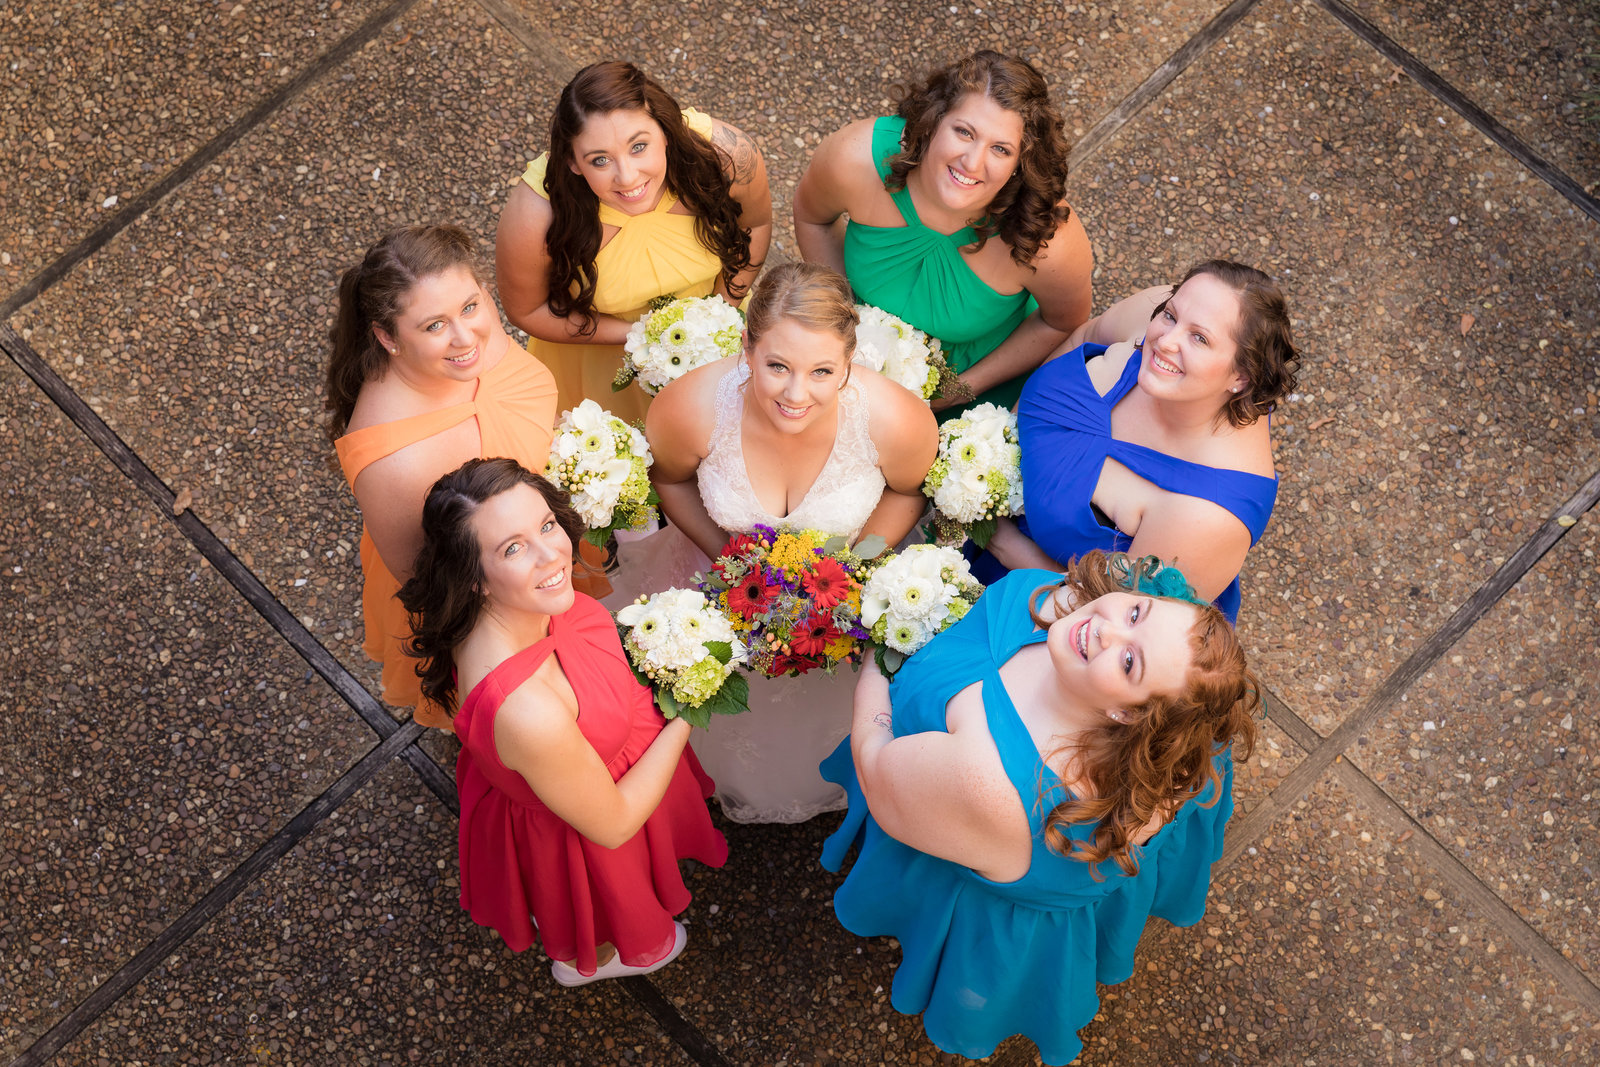 Bright and colorful portrait of a bride with her bridesmaids